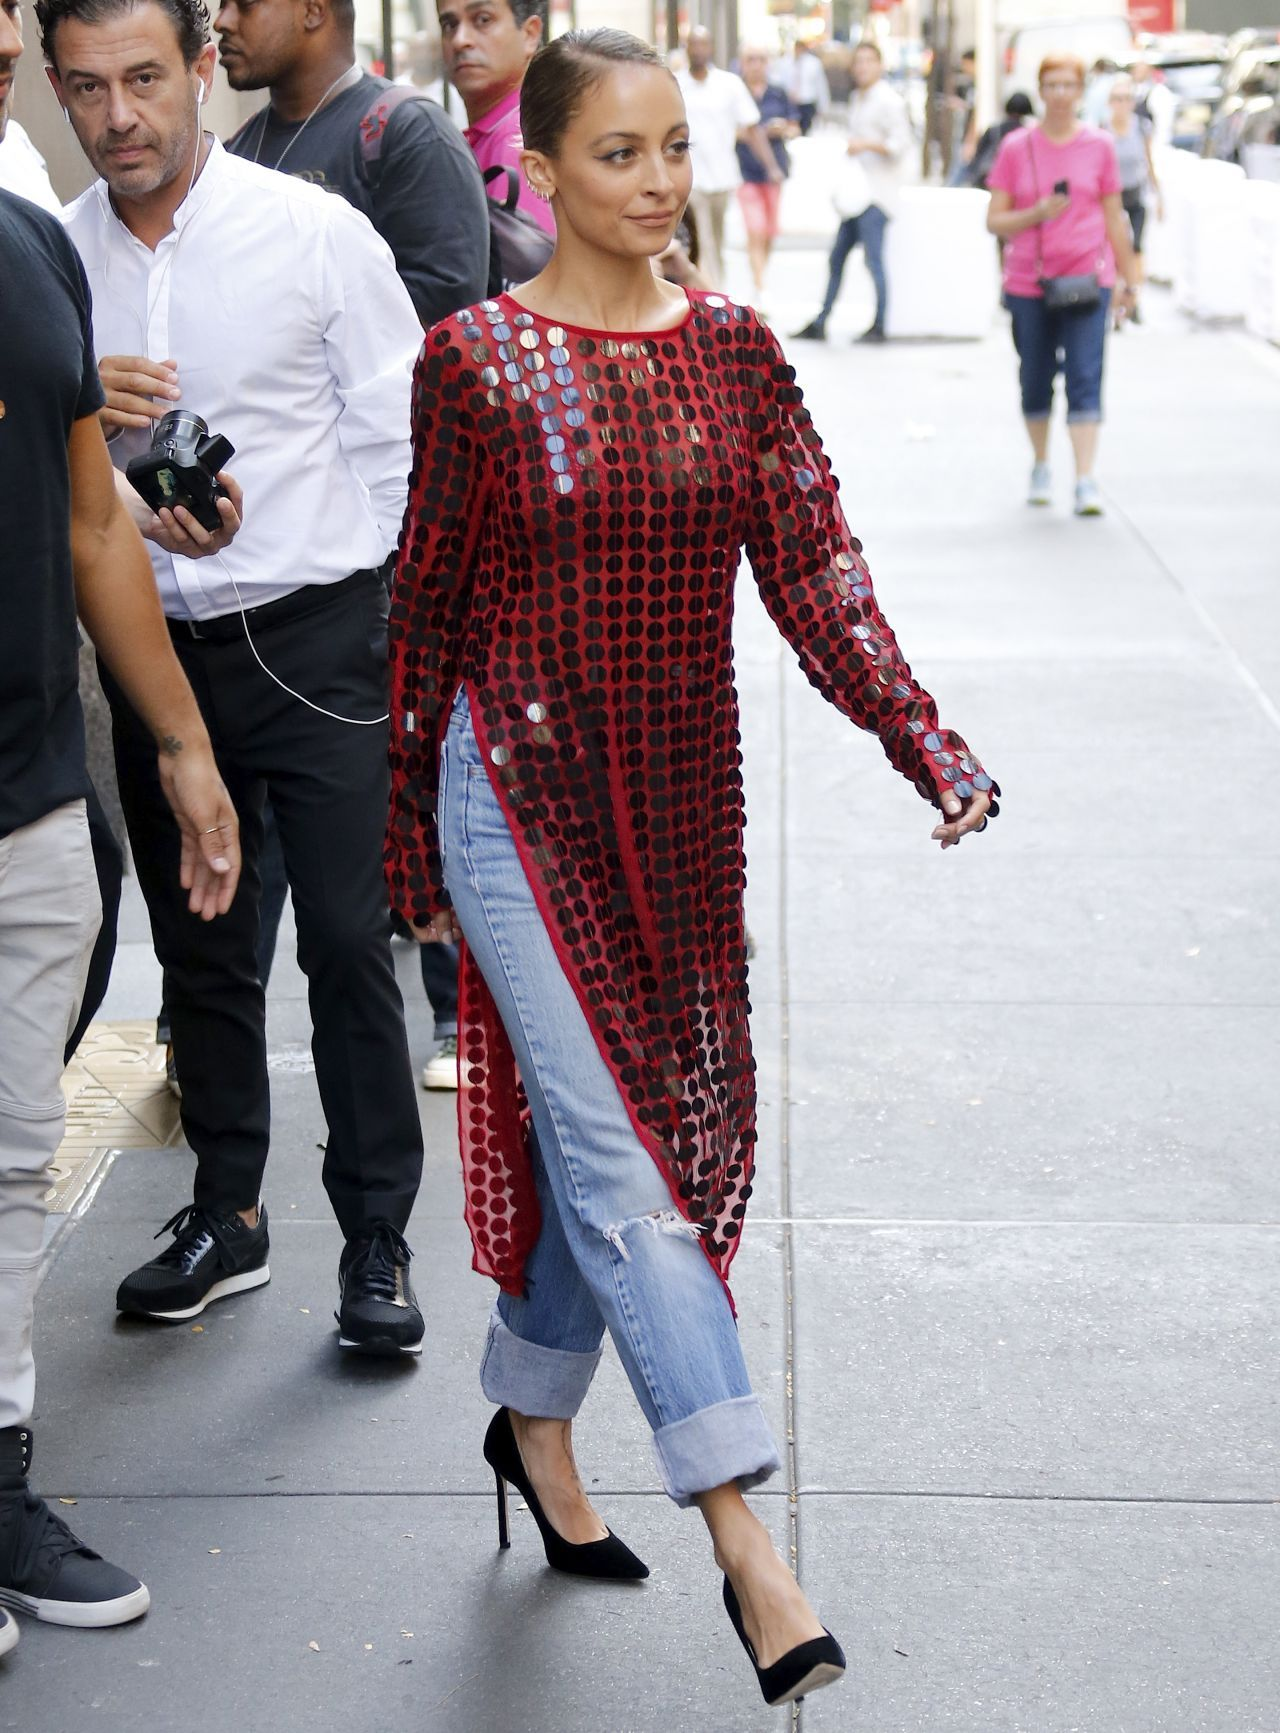 Nicole richie leaves today tv show in new york nudes (25 photos), Pussy Celebrites image